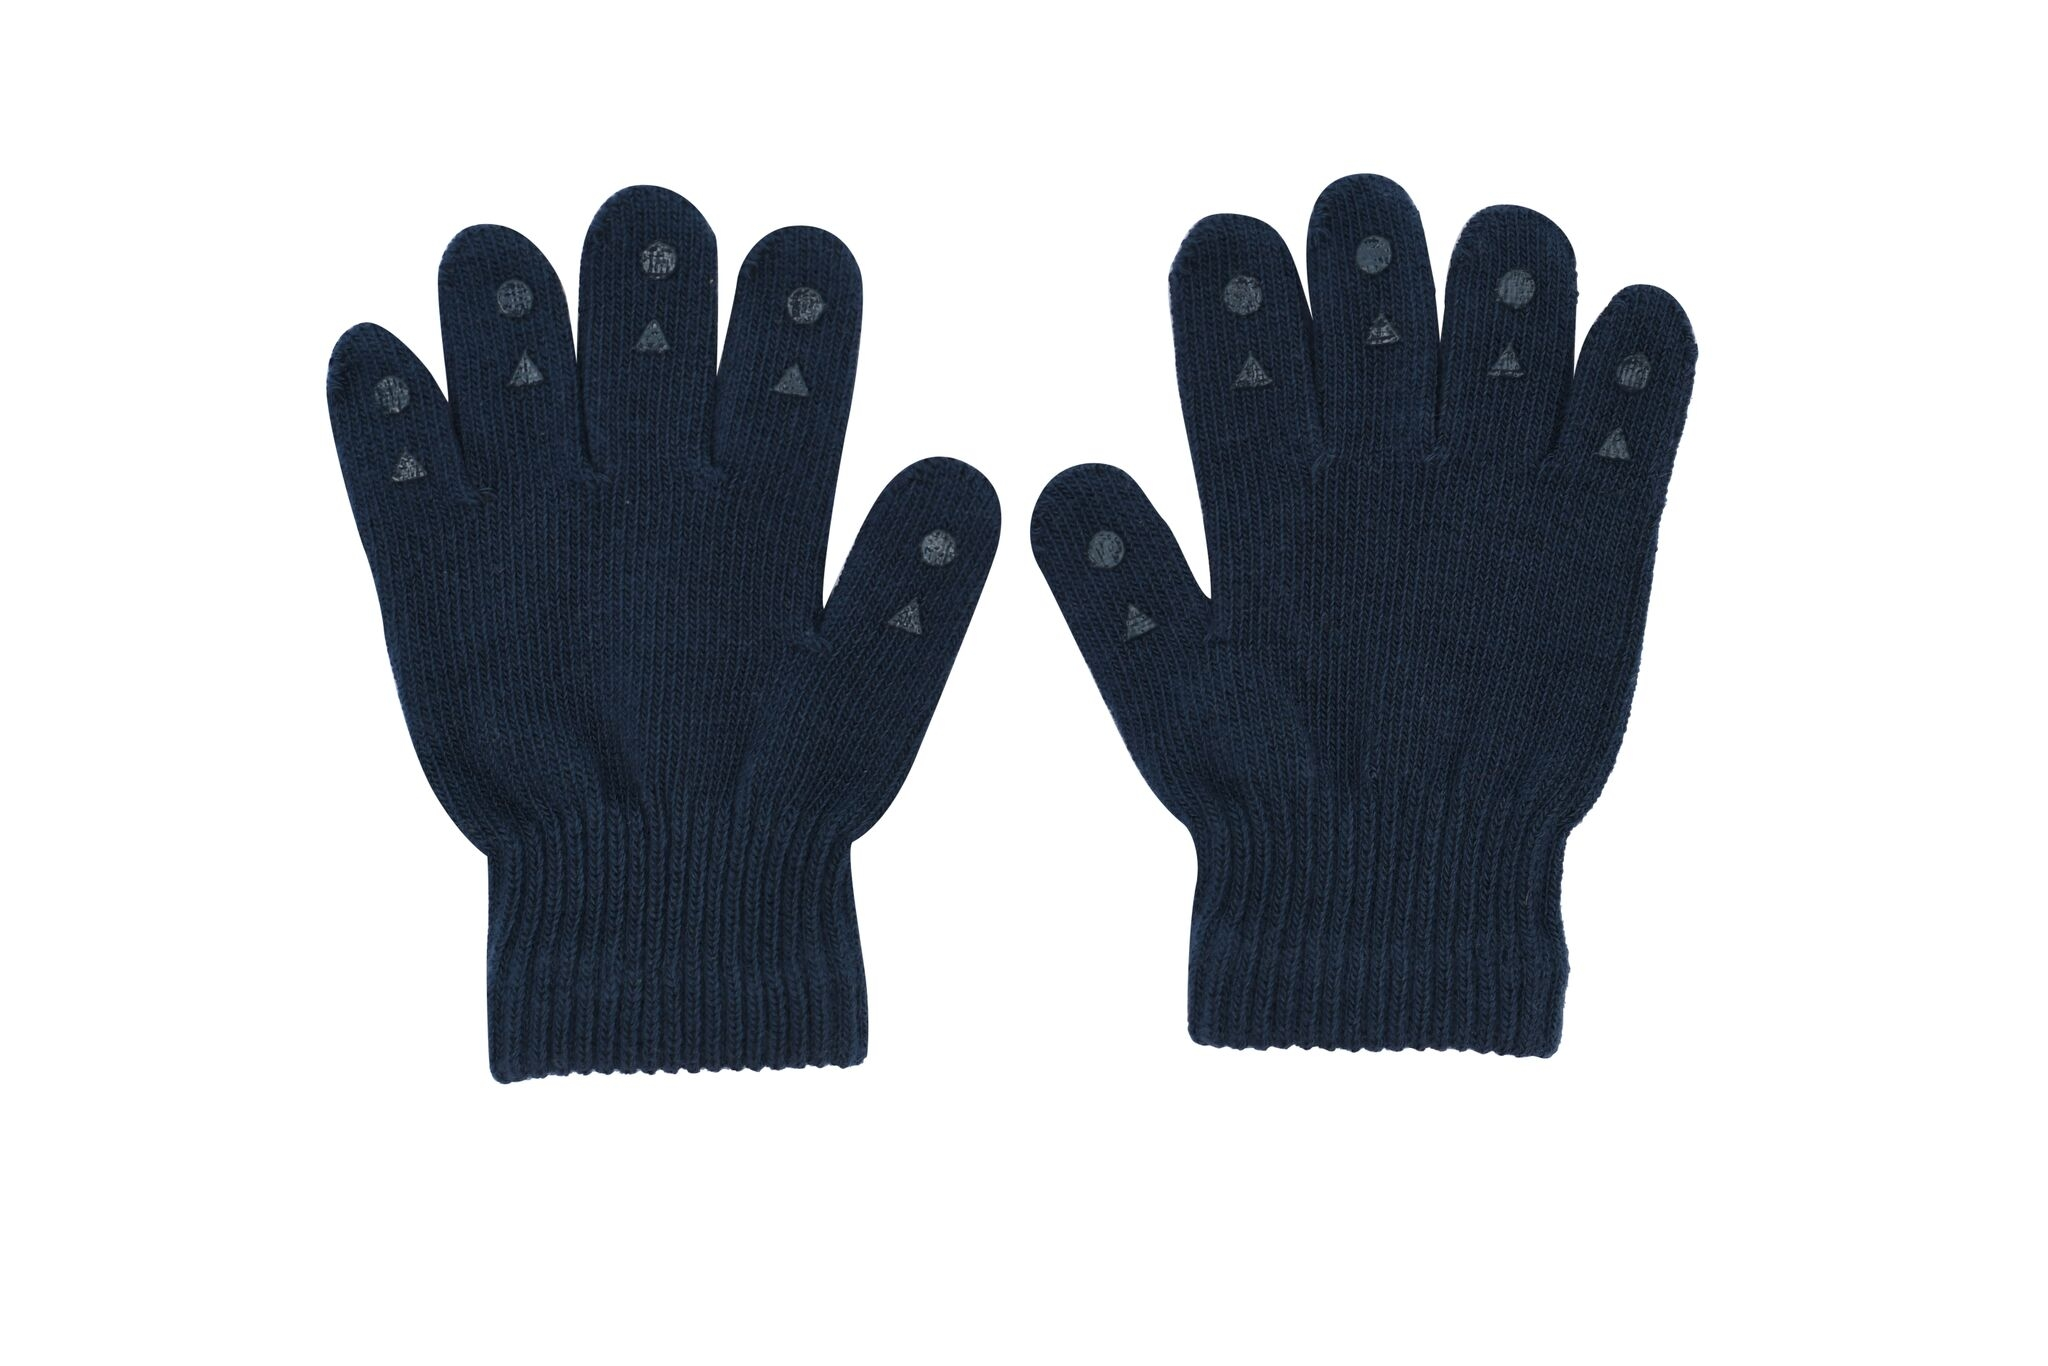 GoBabyGo Grip Gloves Fingervantar 2-3 år - Petroleum Blue